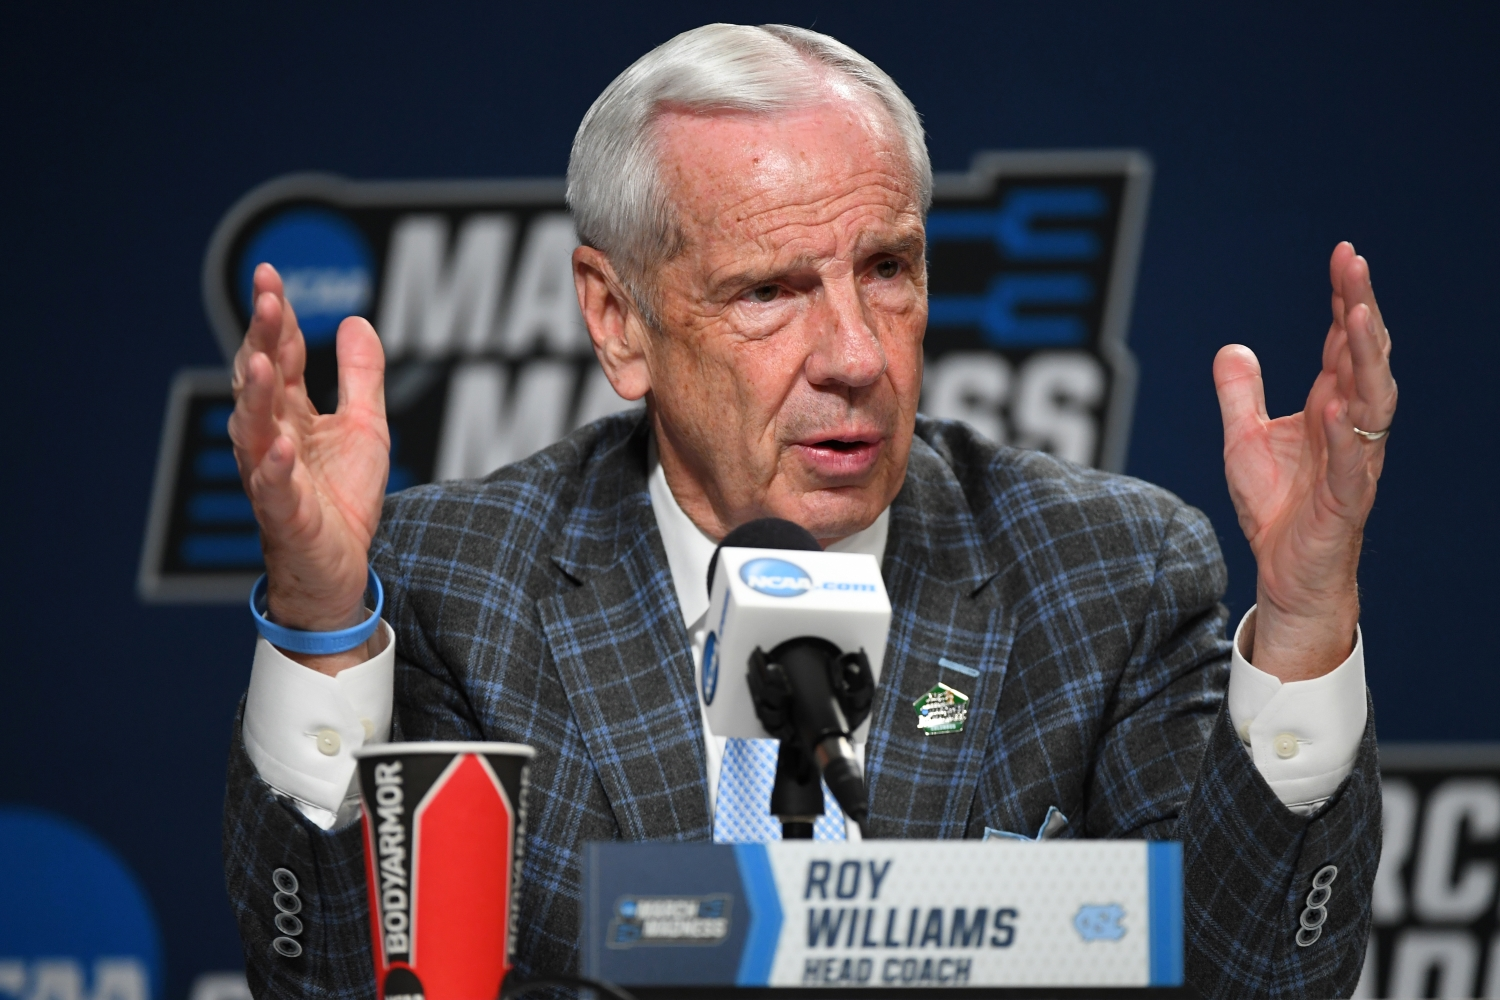 University of North Carolina Tar Heels coach Roy Williams speaks during a press conference.